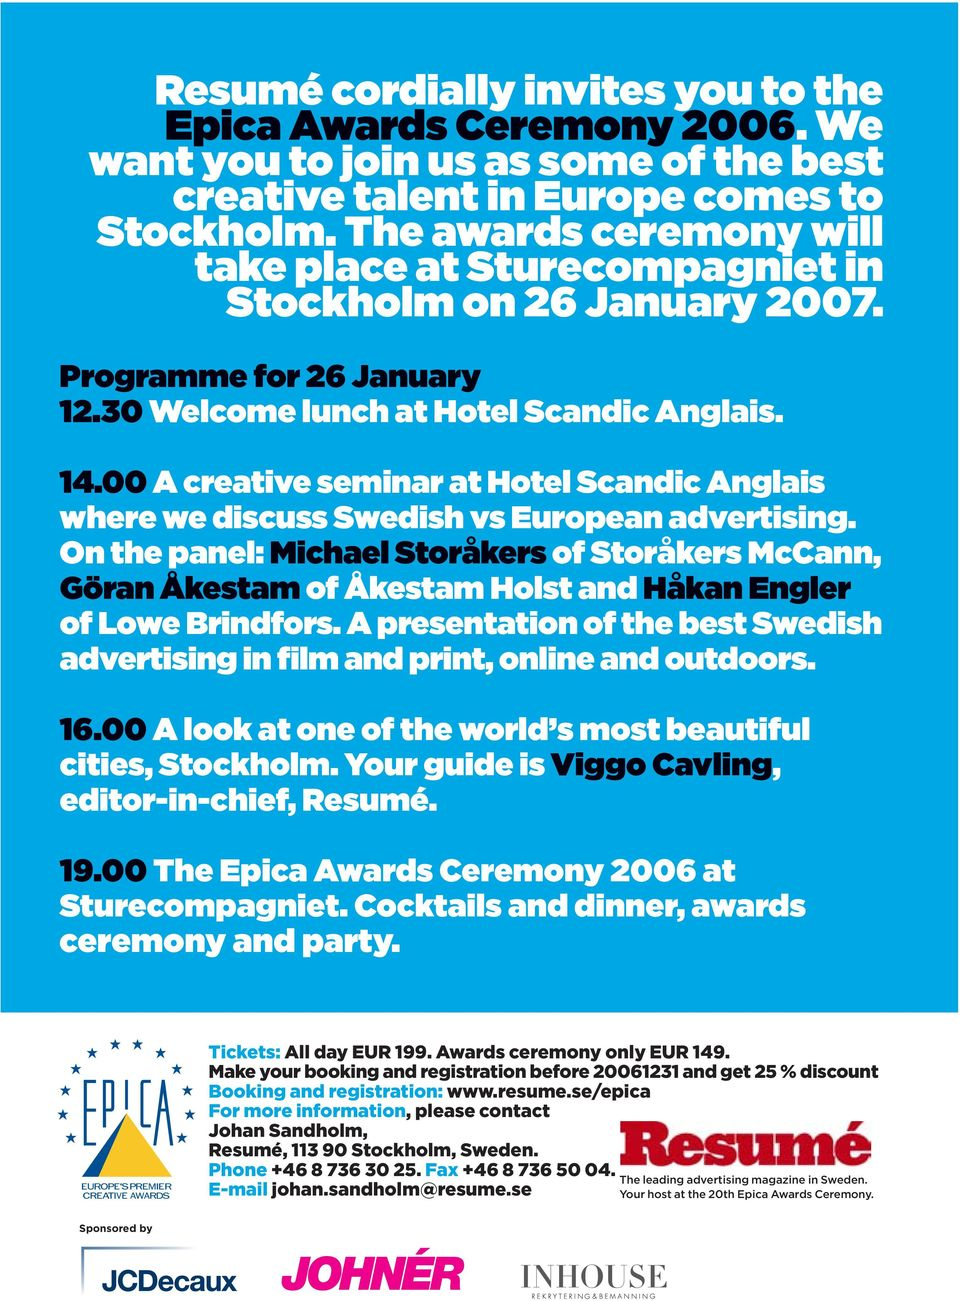 00 A creative seminar at Hotel Scandic Anglais where we discuss Swedish vs European advertising.